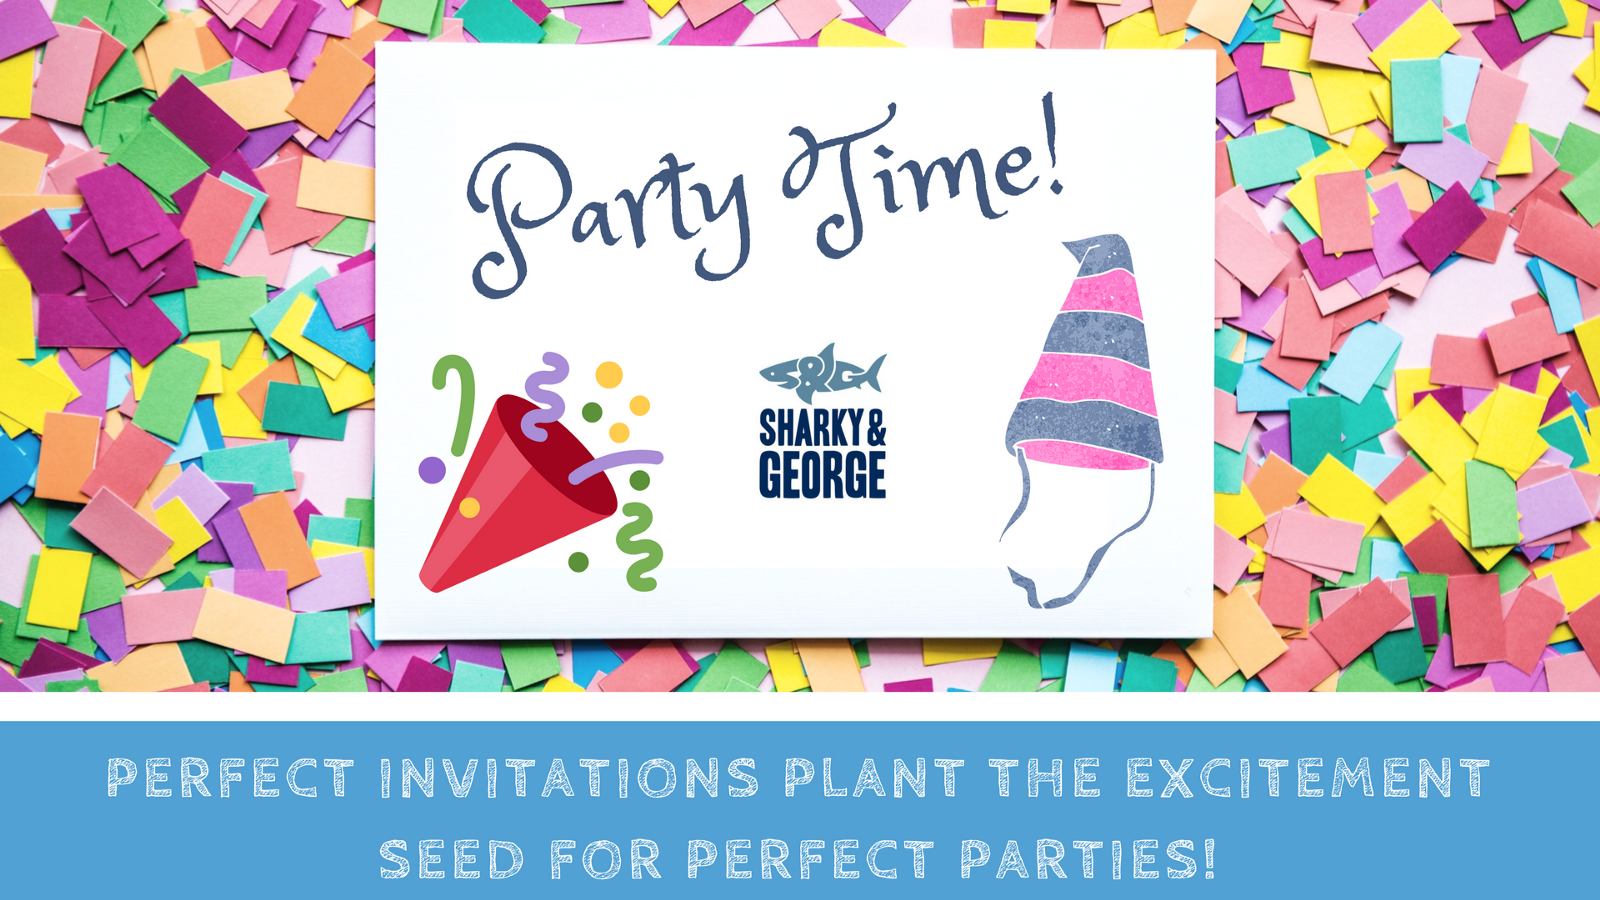 Does the perfect birthday party boil down to your choice of invites?